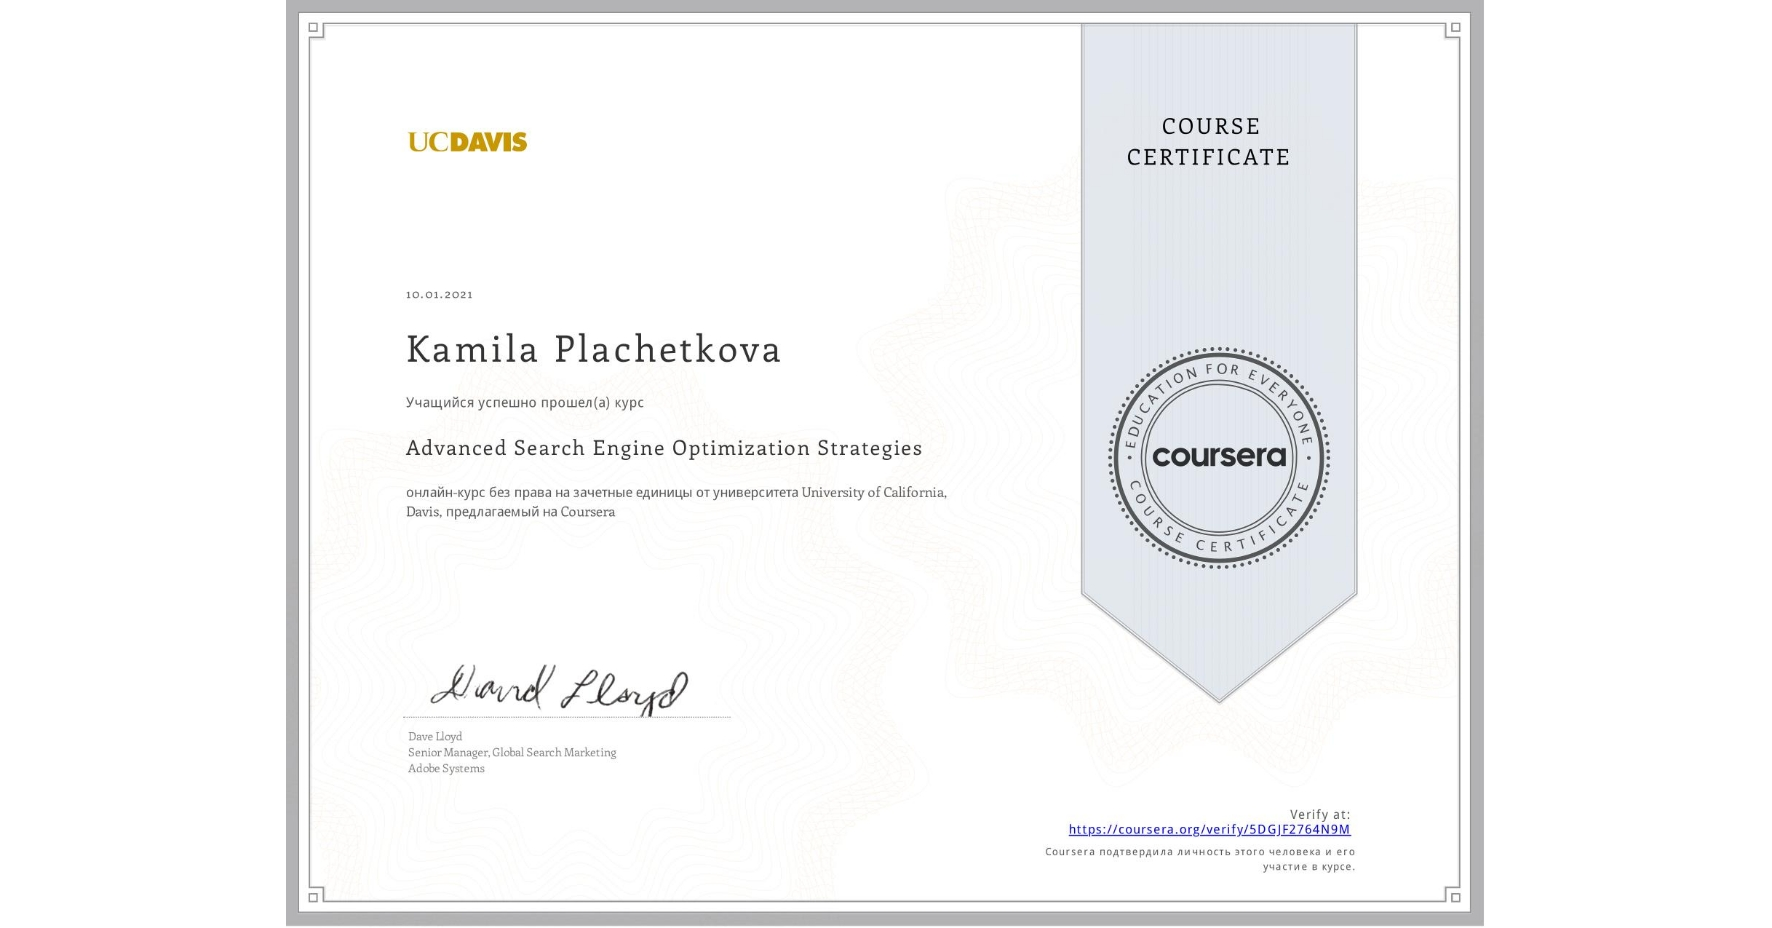 View certificate for Kamila Plachetkova, Advanced Search Engine Optimization Strategies, an online non-credit course authorized by University of California, Davis and offered through Coursera